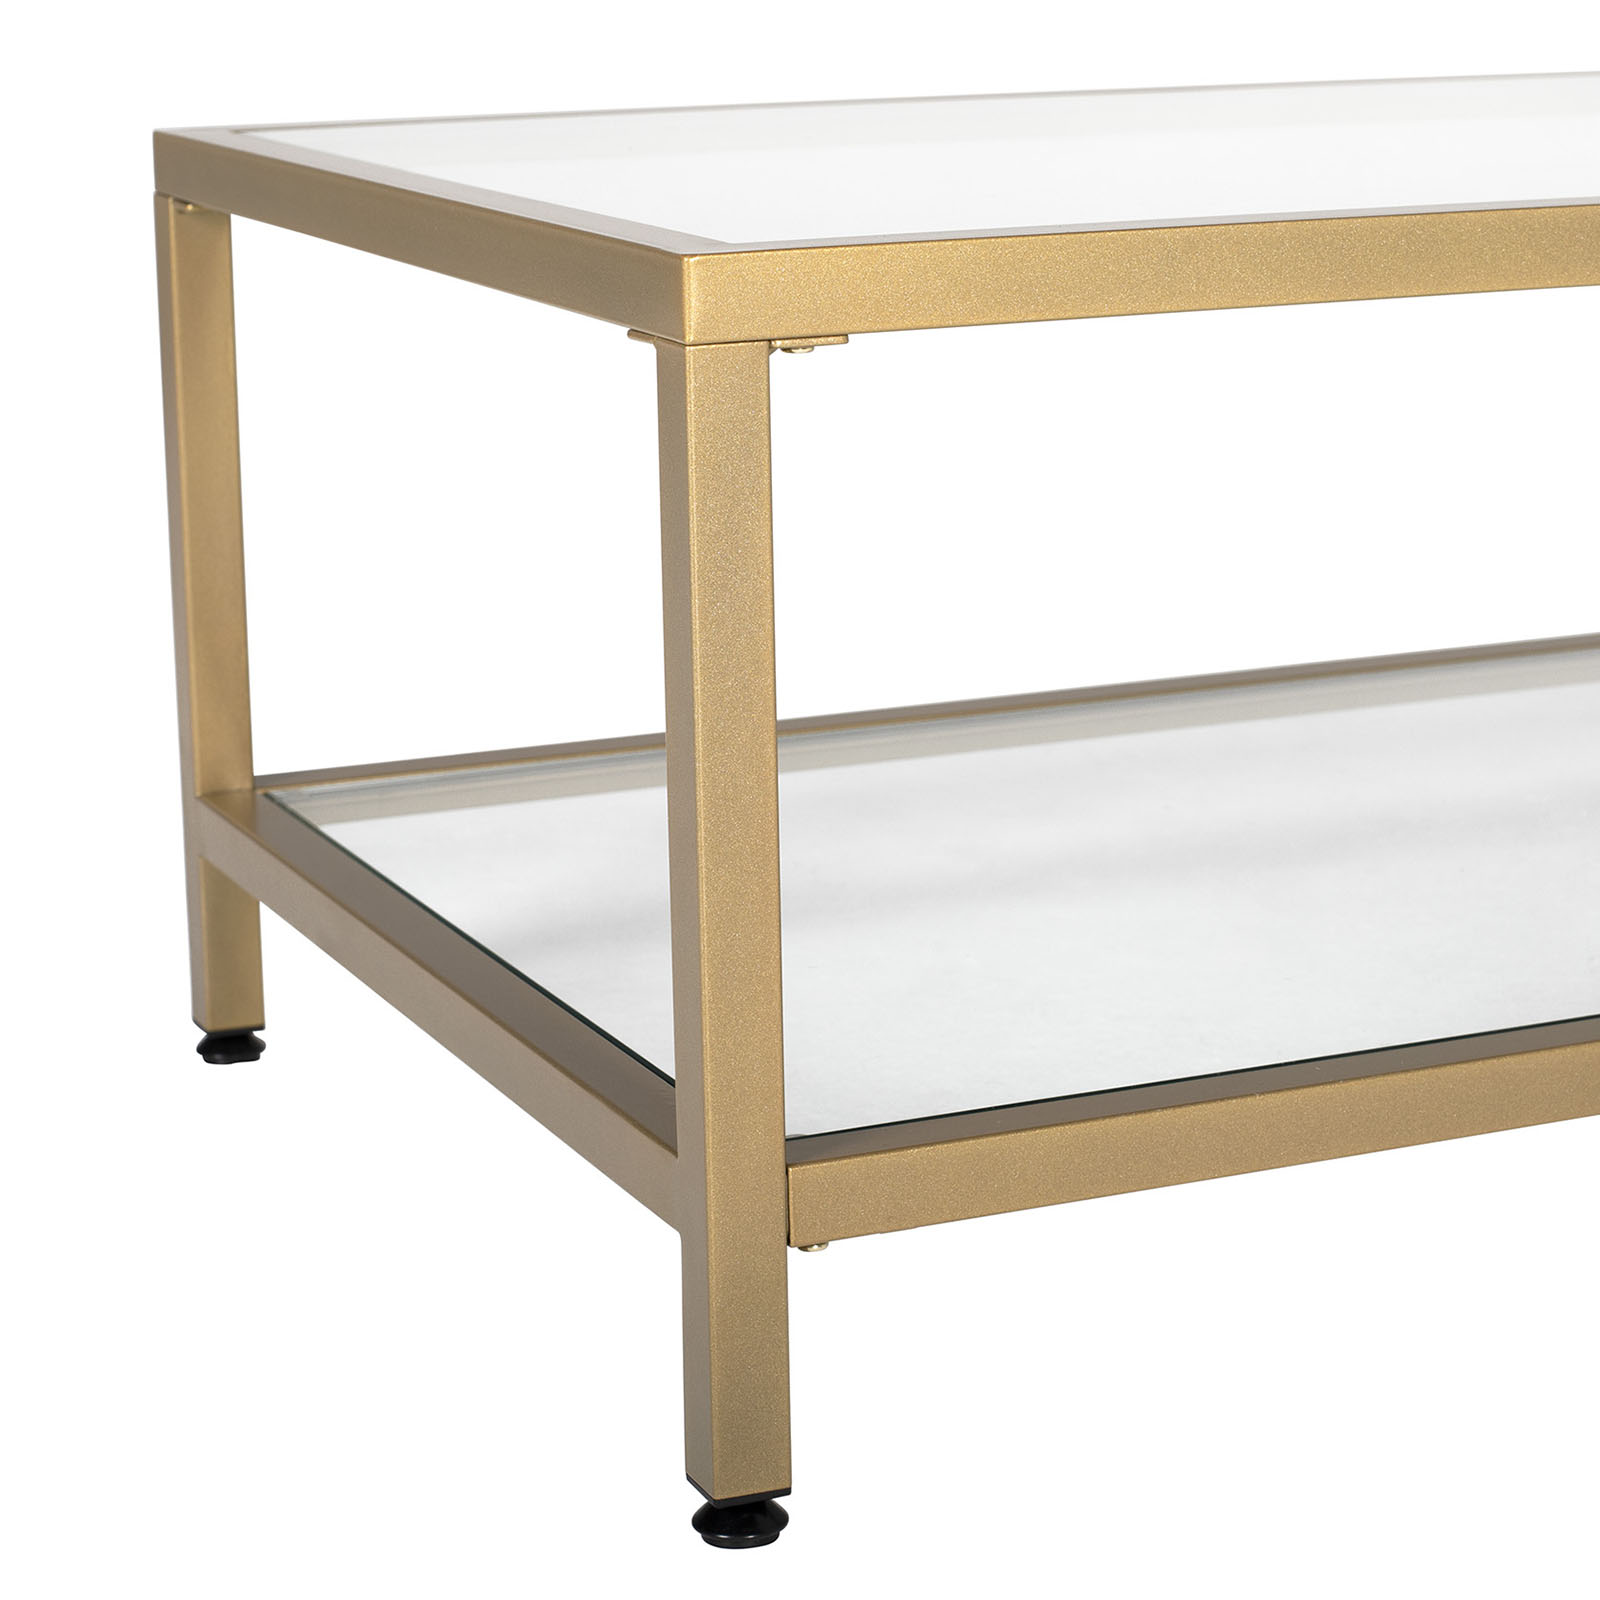 71034 Camber Rectangle Coffee Table detail2